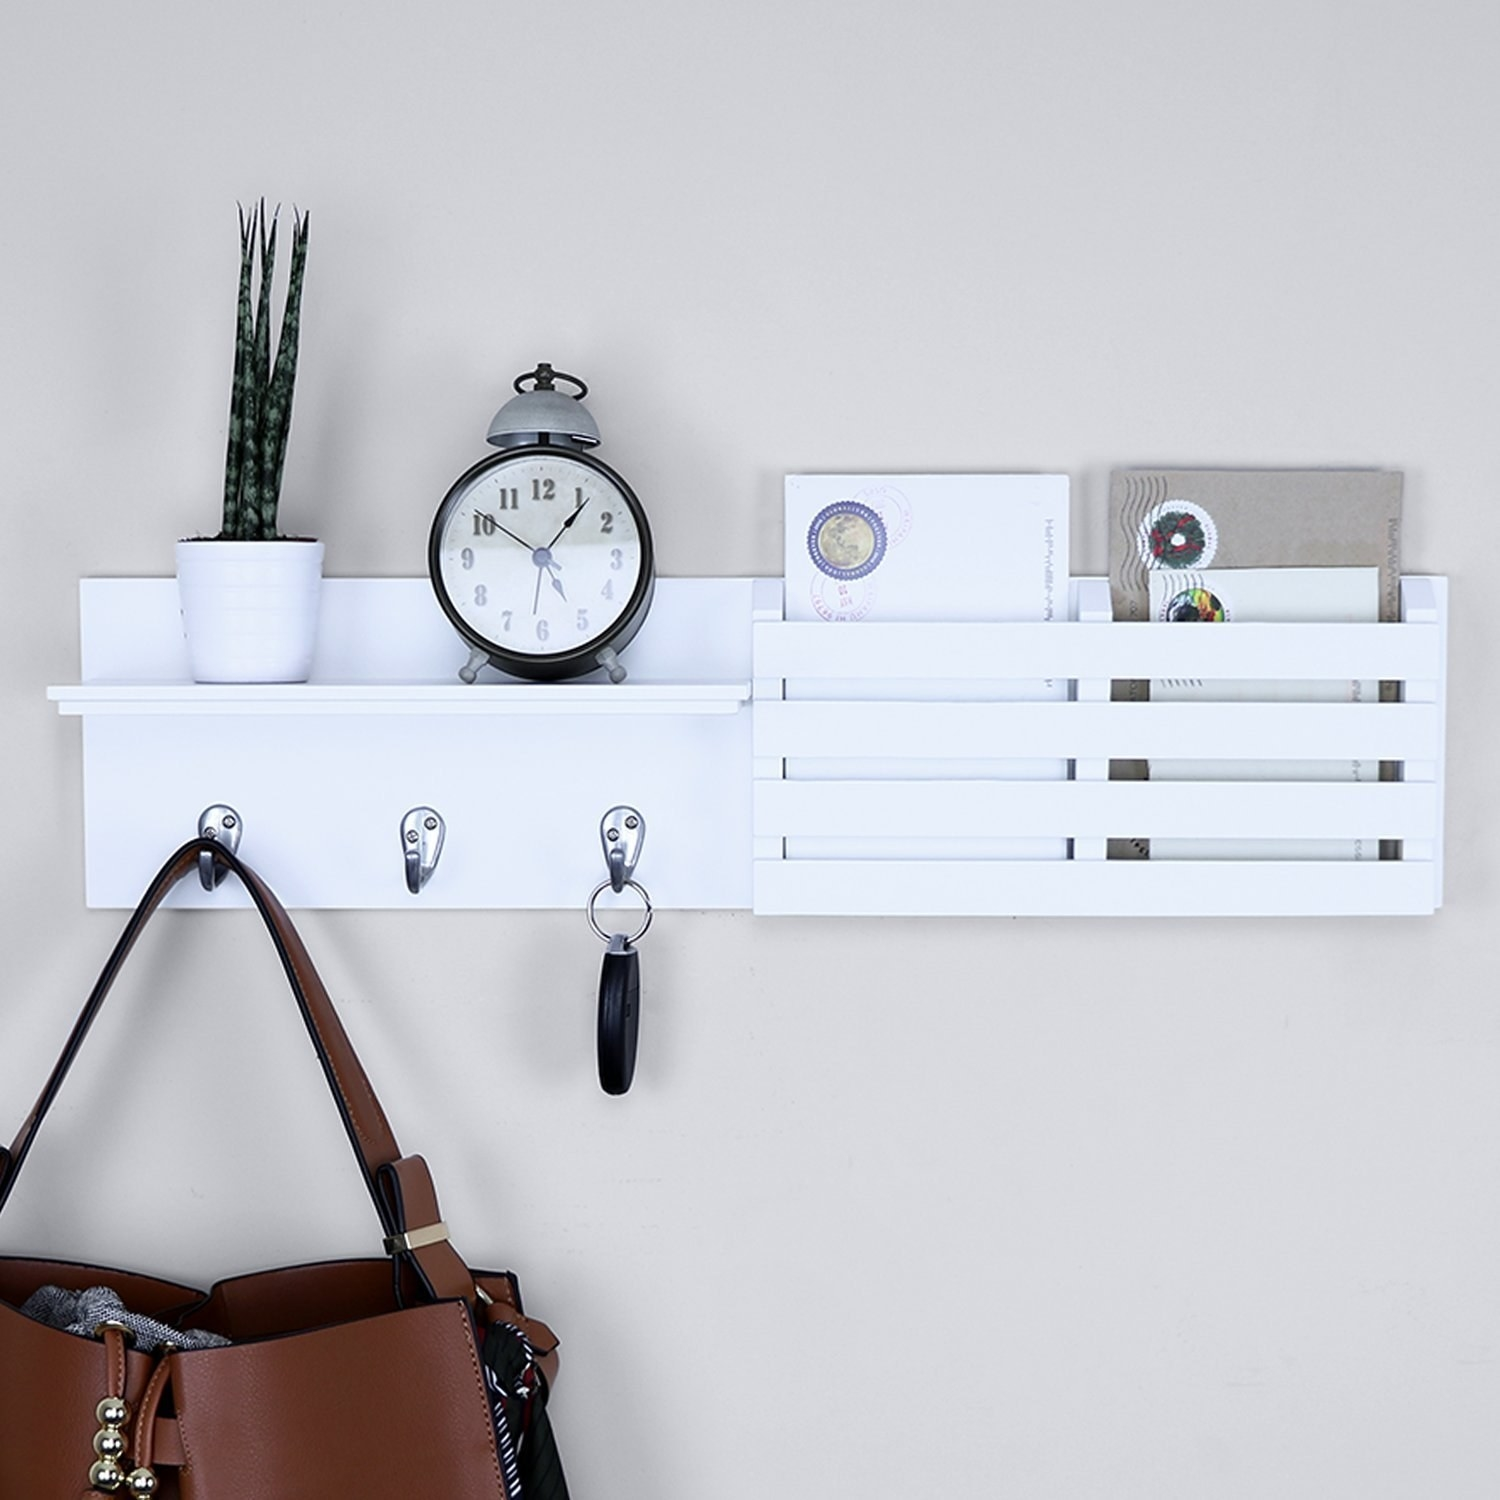 A shelf is mounted to a wall It has a small shelf, three hooks, and a letter slot